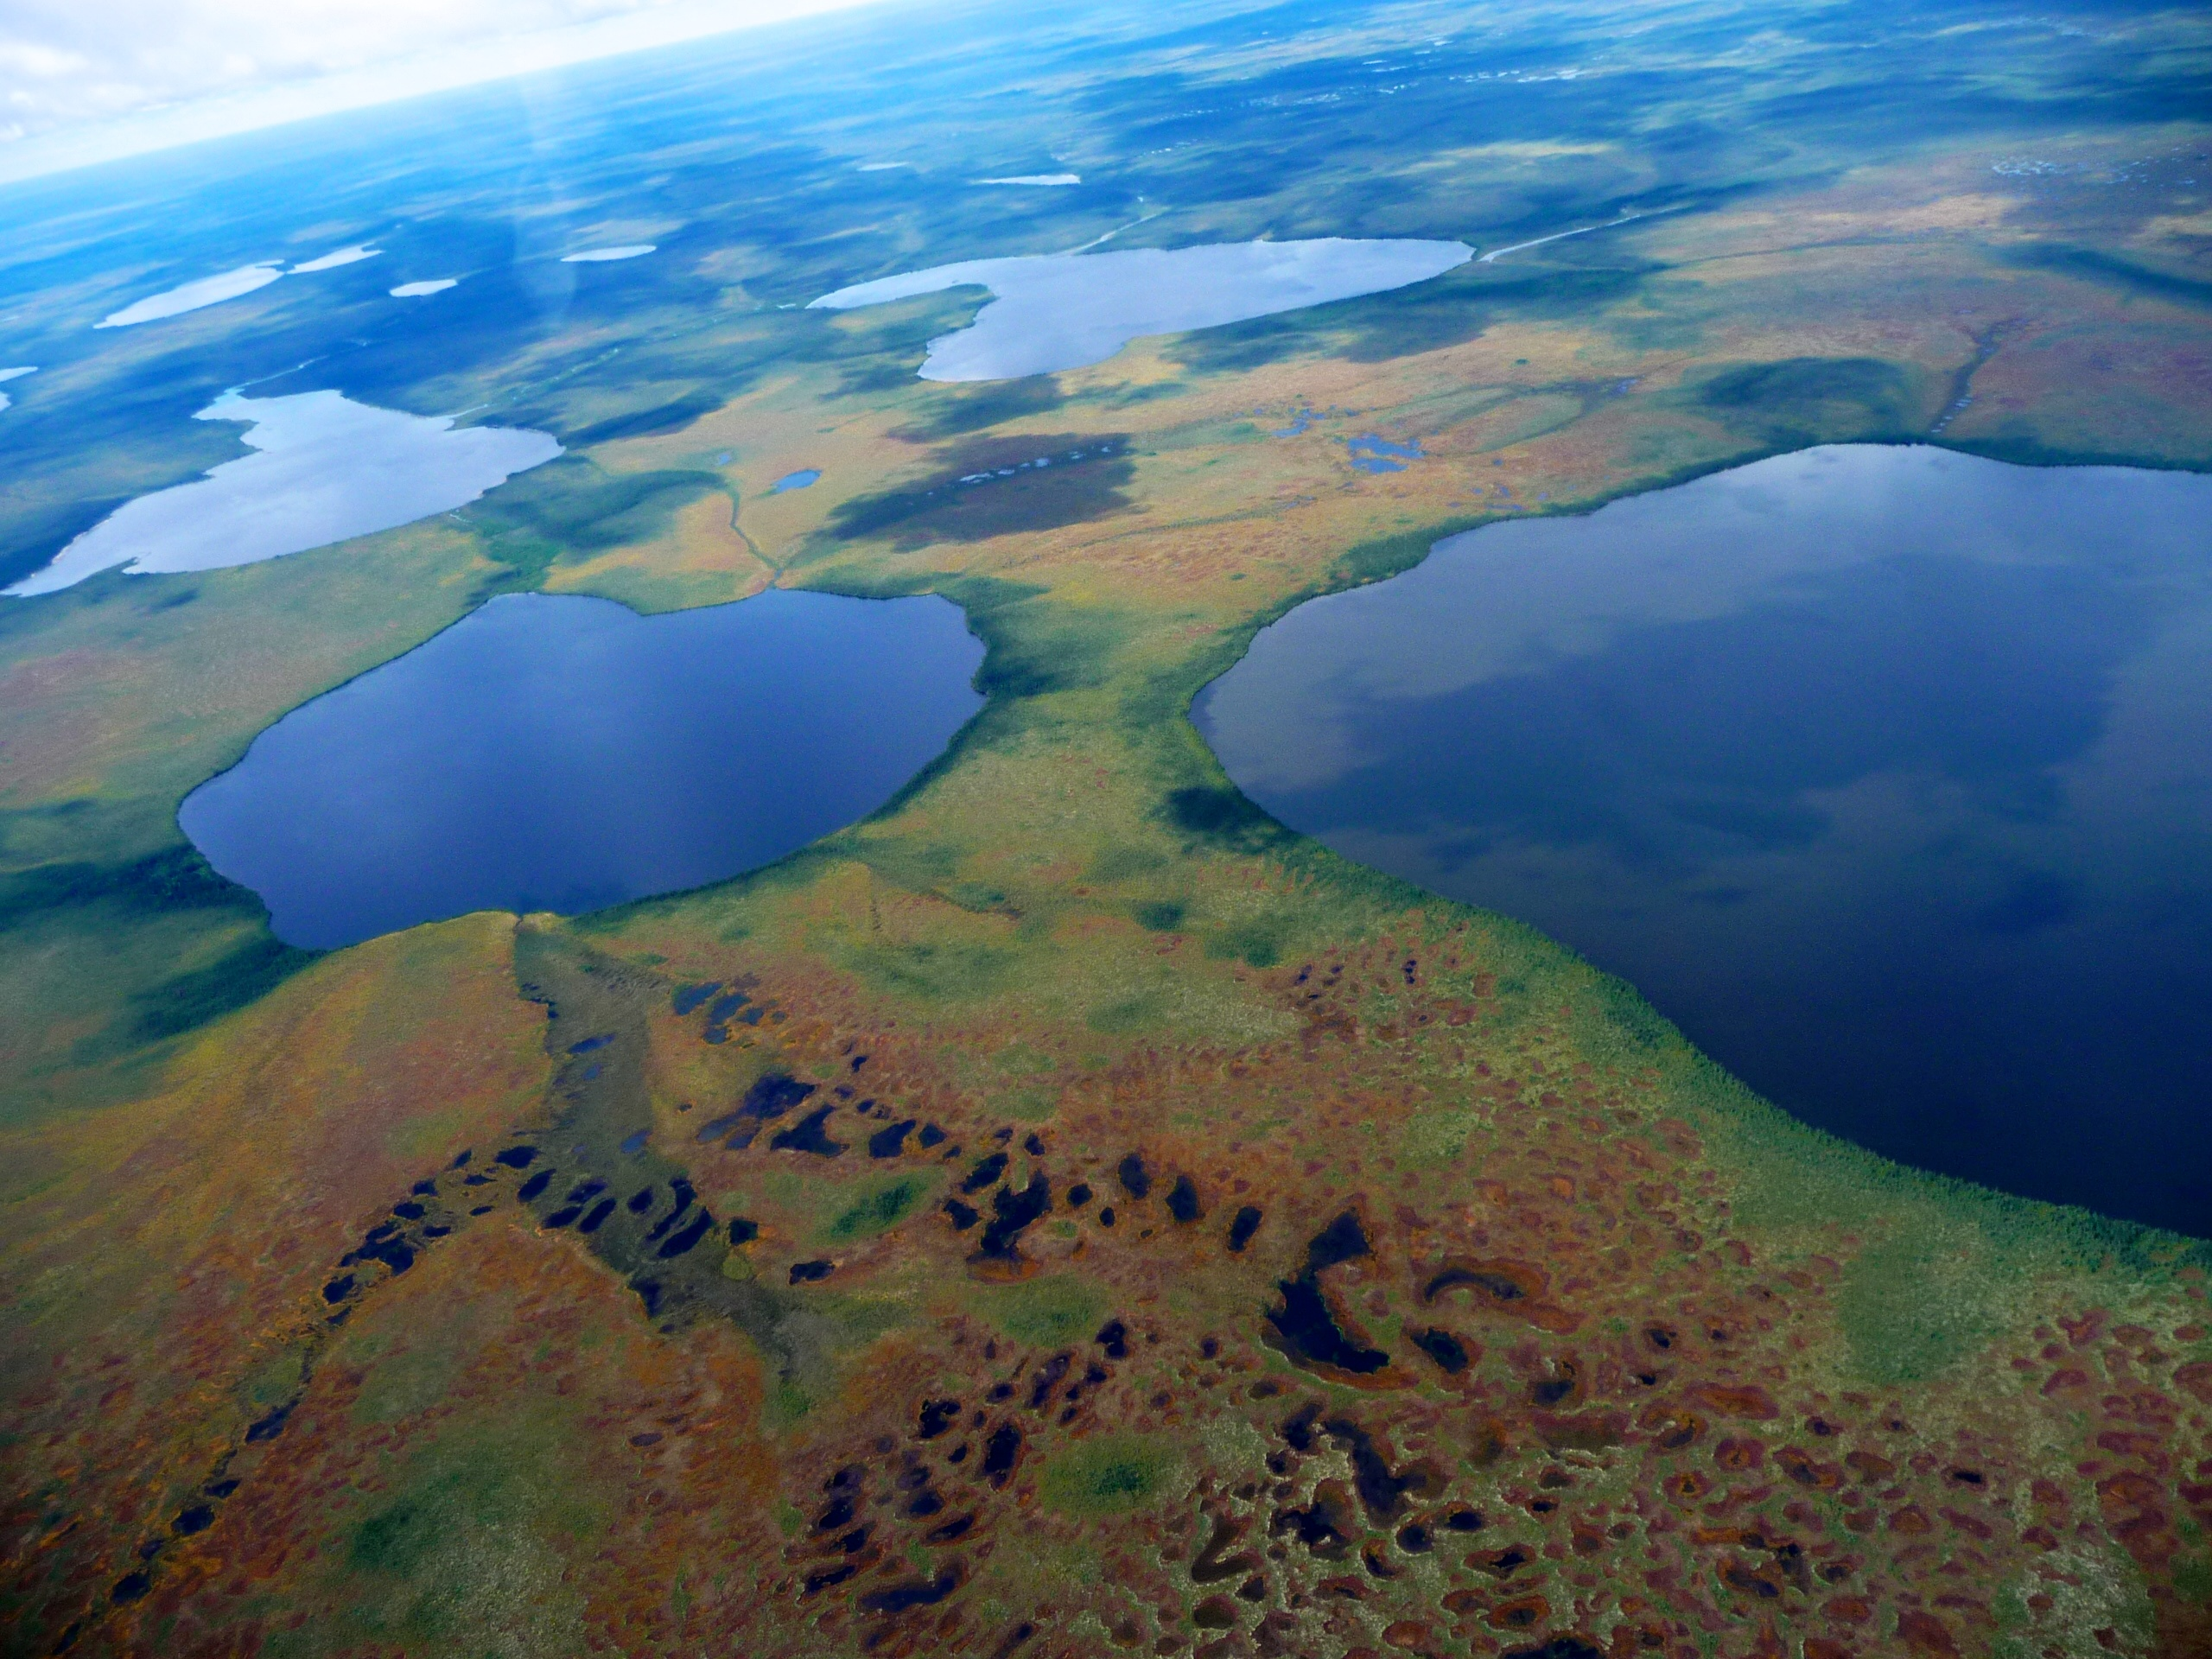 Aerial view of the landscape typical of the Hudson Bay Lowlands, Ontario, Canada